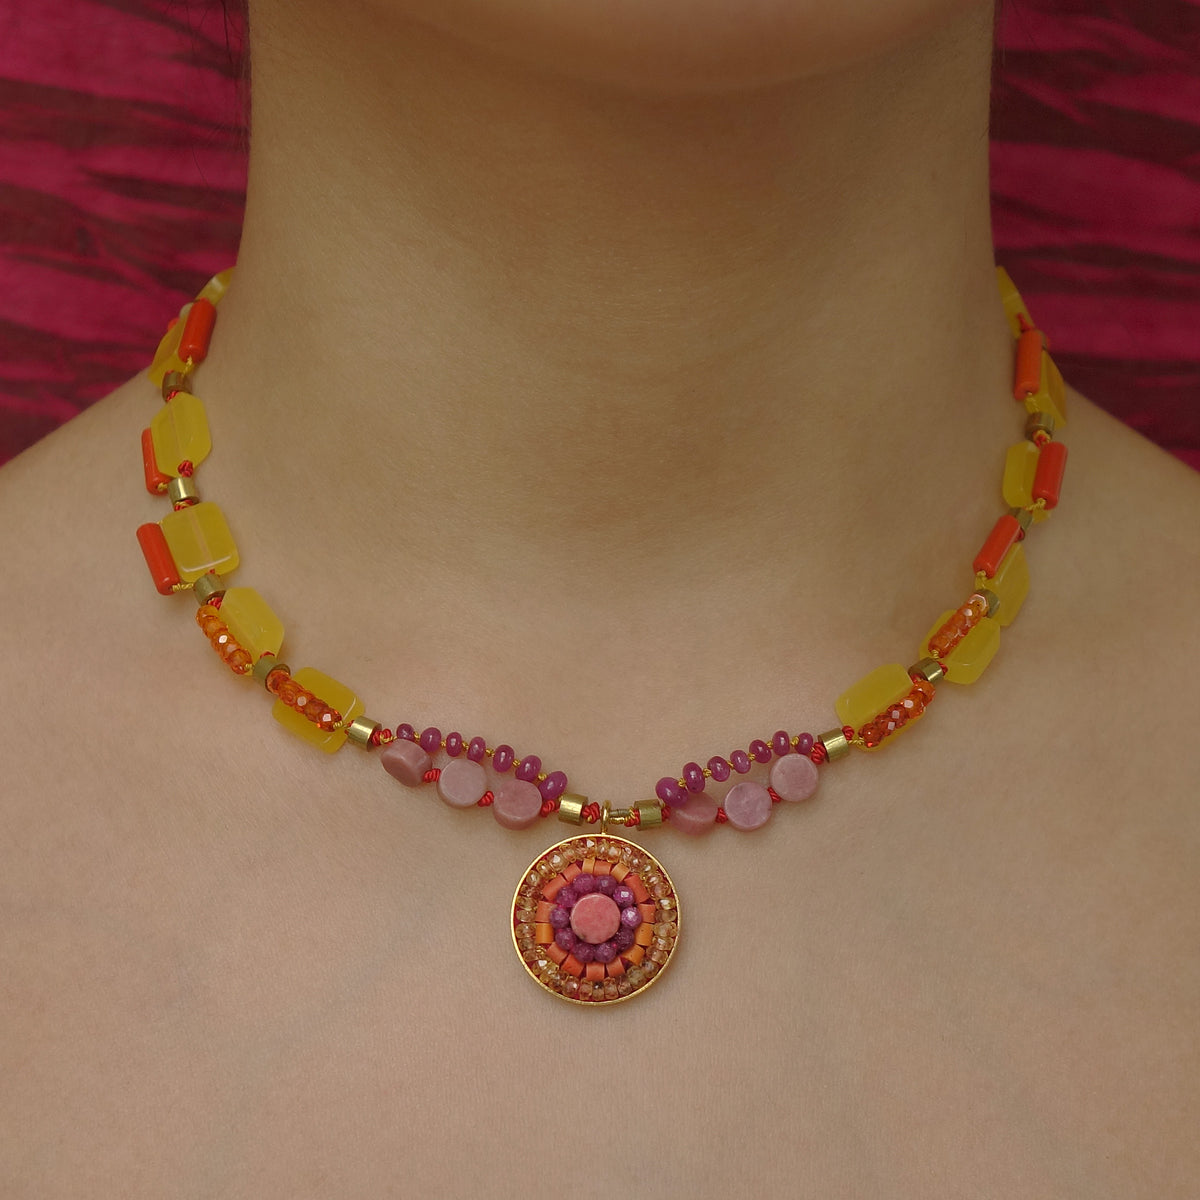 Sunshine on my Shoulders Looks so Lovely mosaic necklace